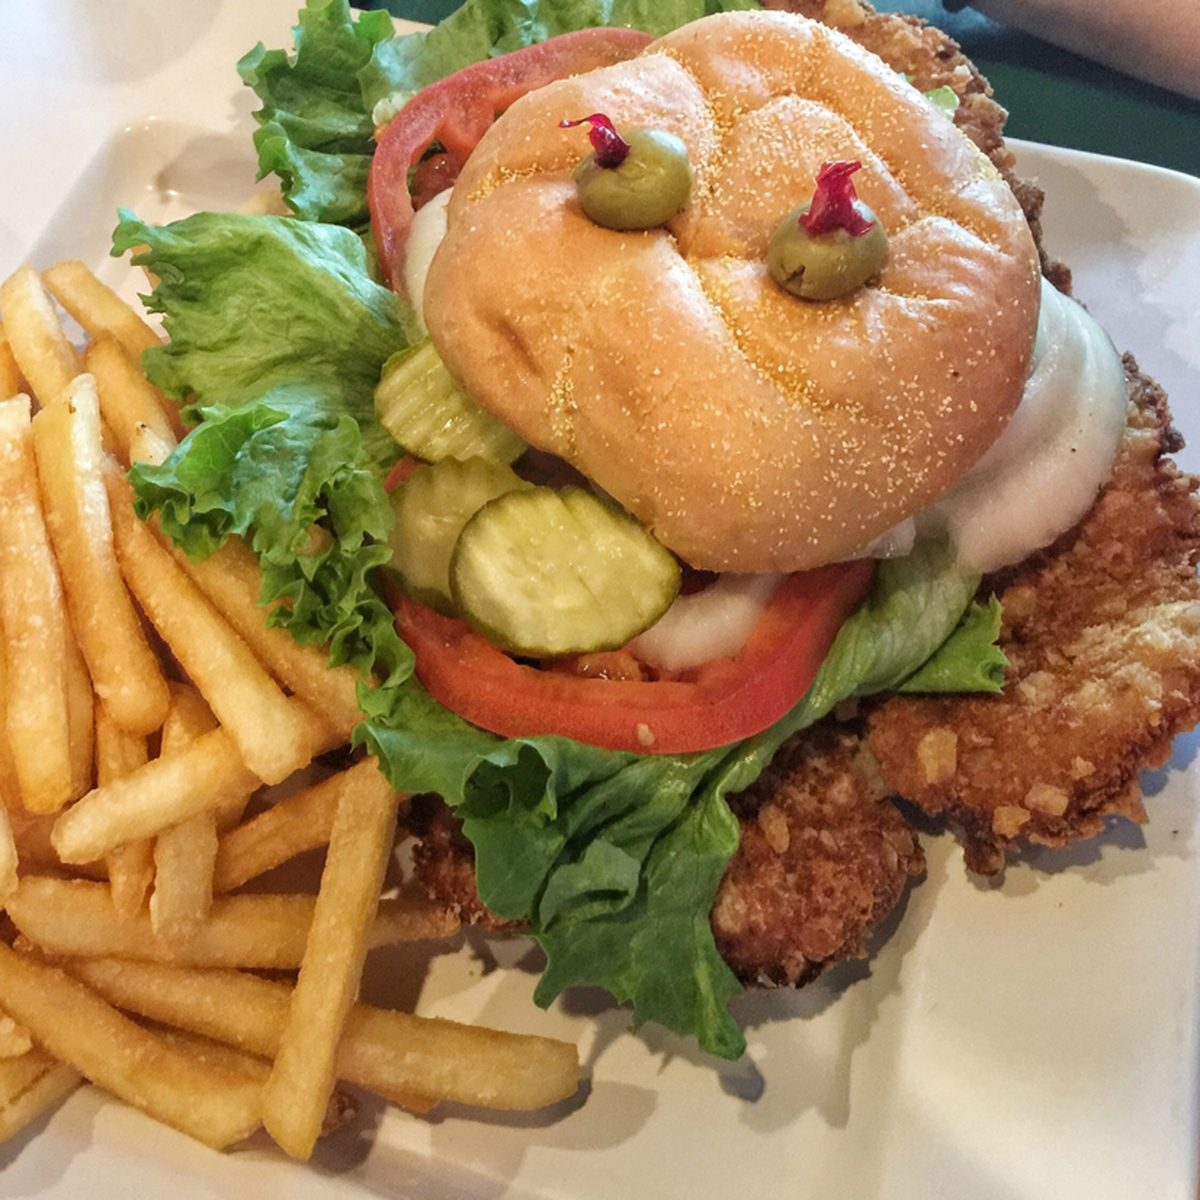 Fried pork tenderloin sandwich with fries